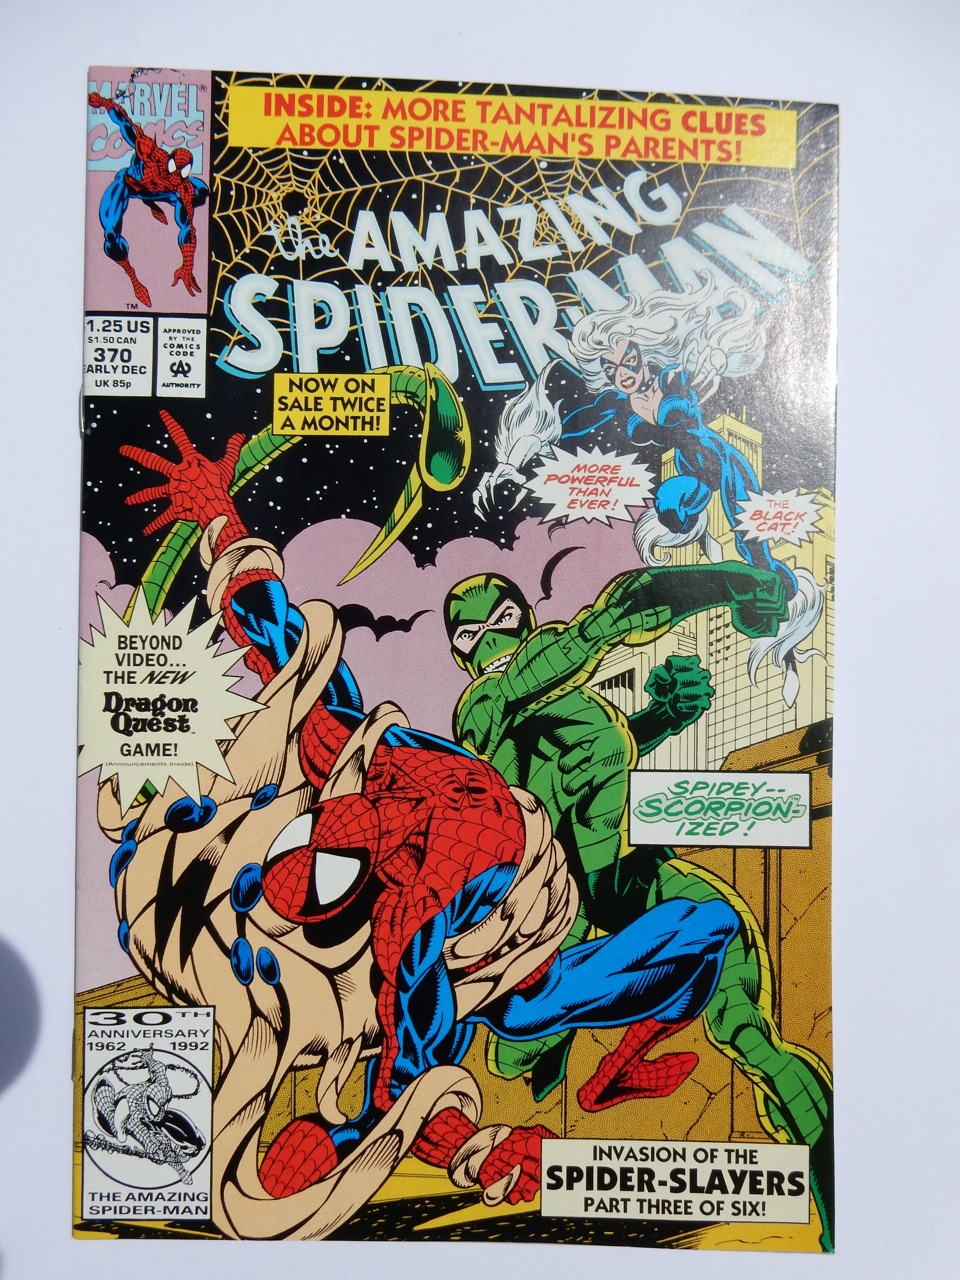 Amazing Spider-Man #370